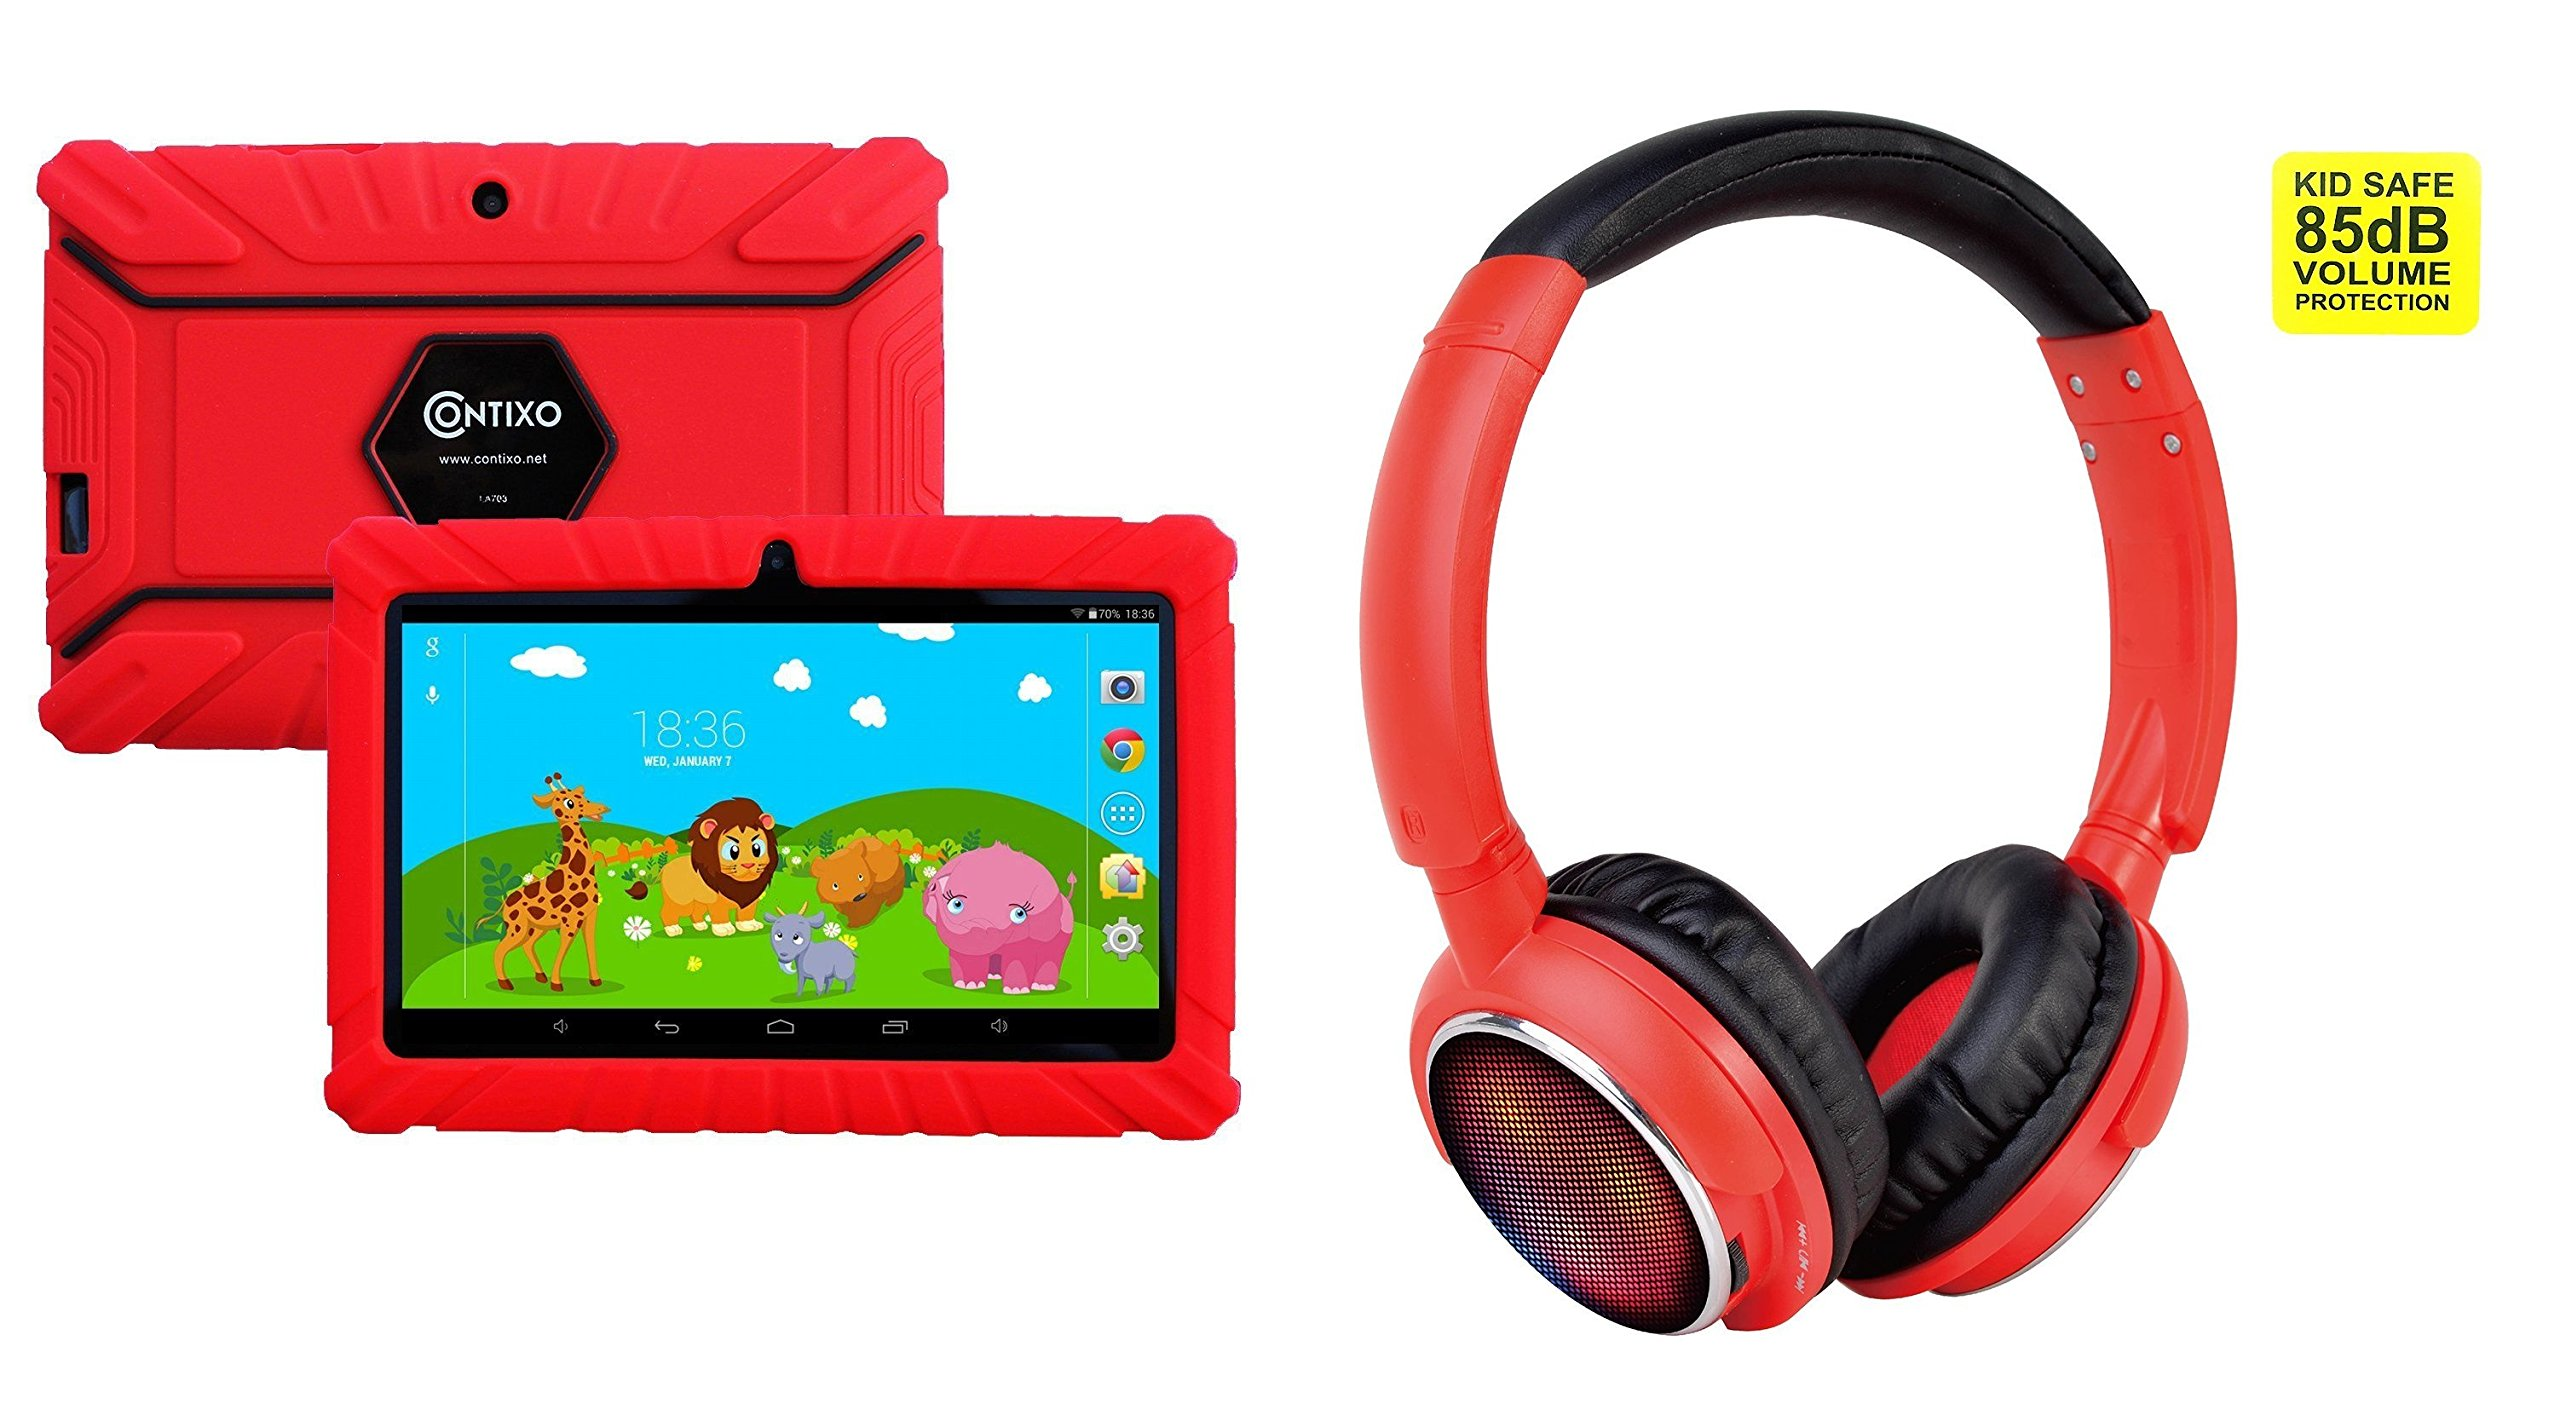 Contixo 7'' Educational Learning Kids Tablet 8gb & Kid Safe 85db Bluetooth Over The Ear Headphones Bundle (Red) - Best Gift